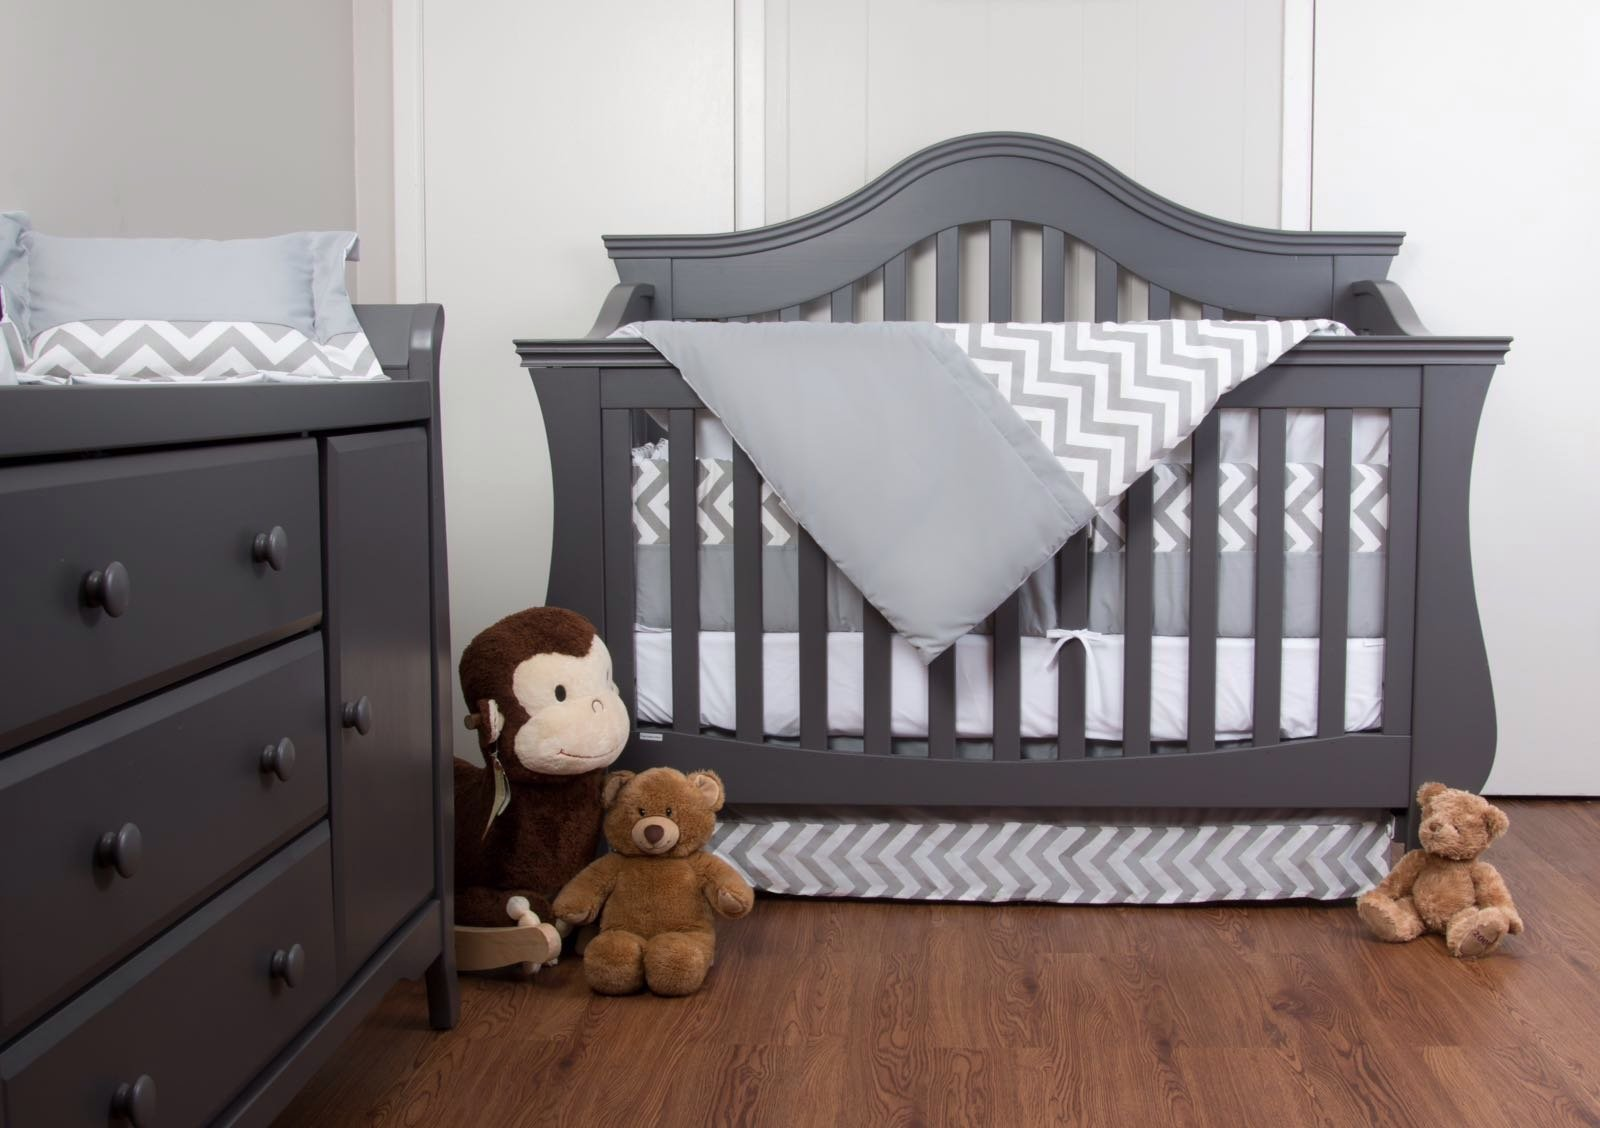 7 Piece Crib Nursery Bedding Set with Bumper by Simon's Baby House – 100% Cotton – Gray and White Chevron Zigzag Design for Boys & Girls – 52'' x 28'' – Fits Regular Size Cribs